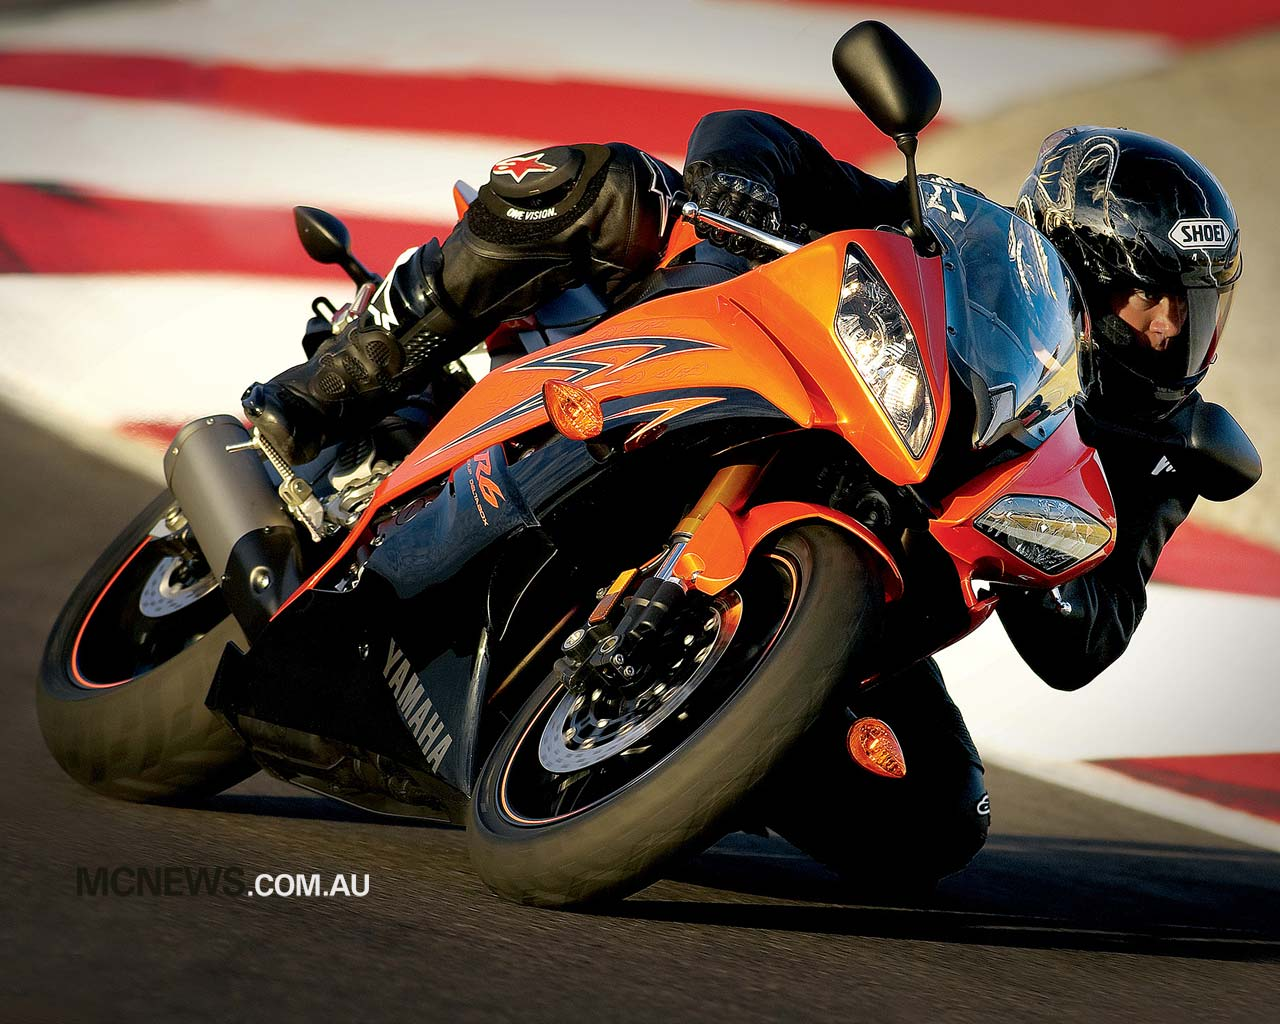 Yamaha R6 Orange 17975 Hd Wallpapers in Bikes - Telusers.com